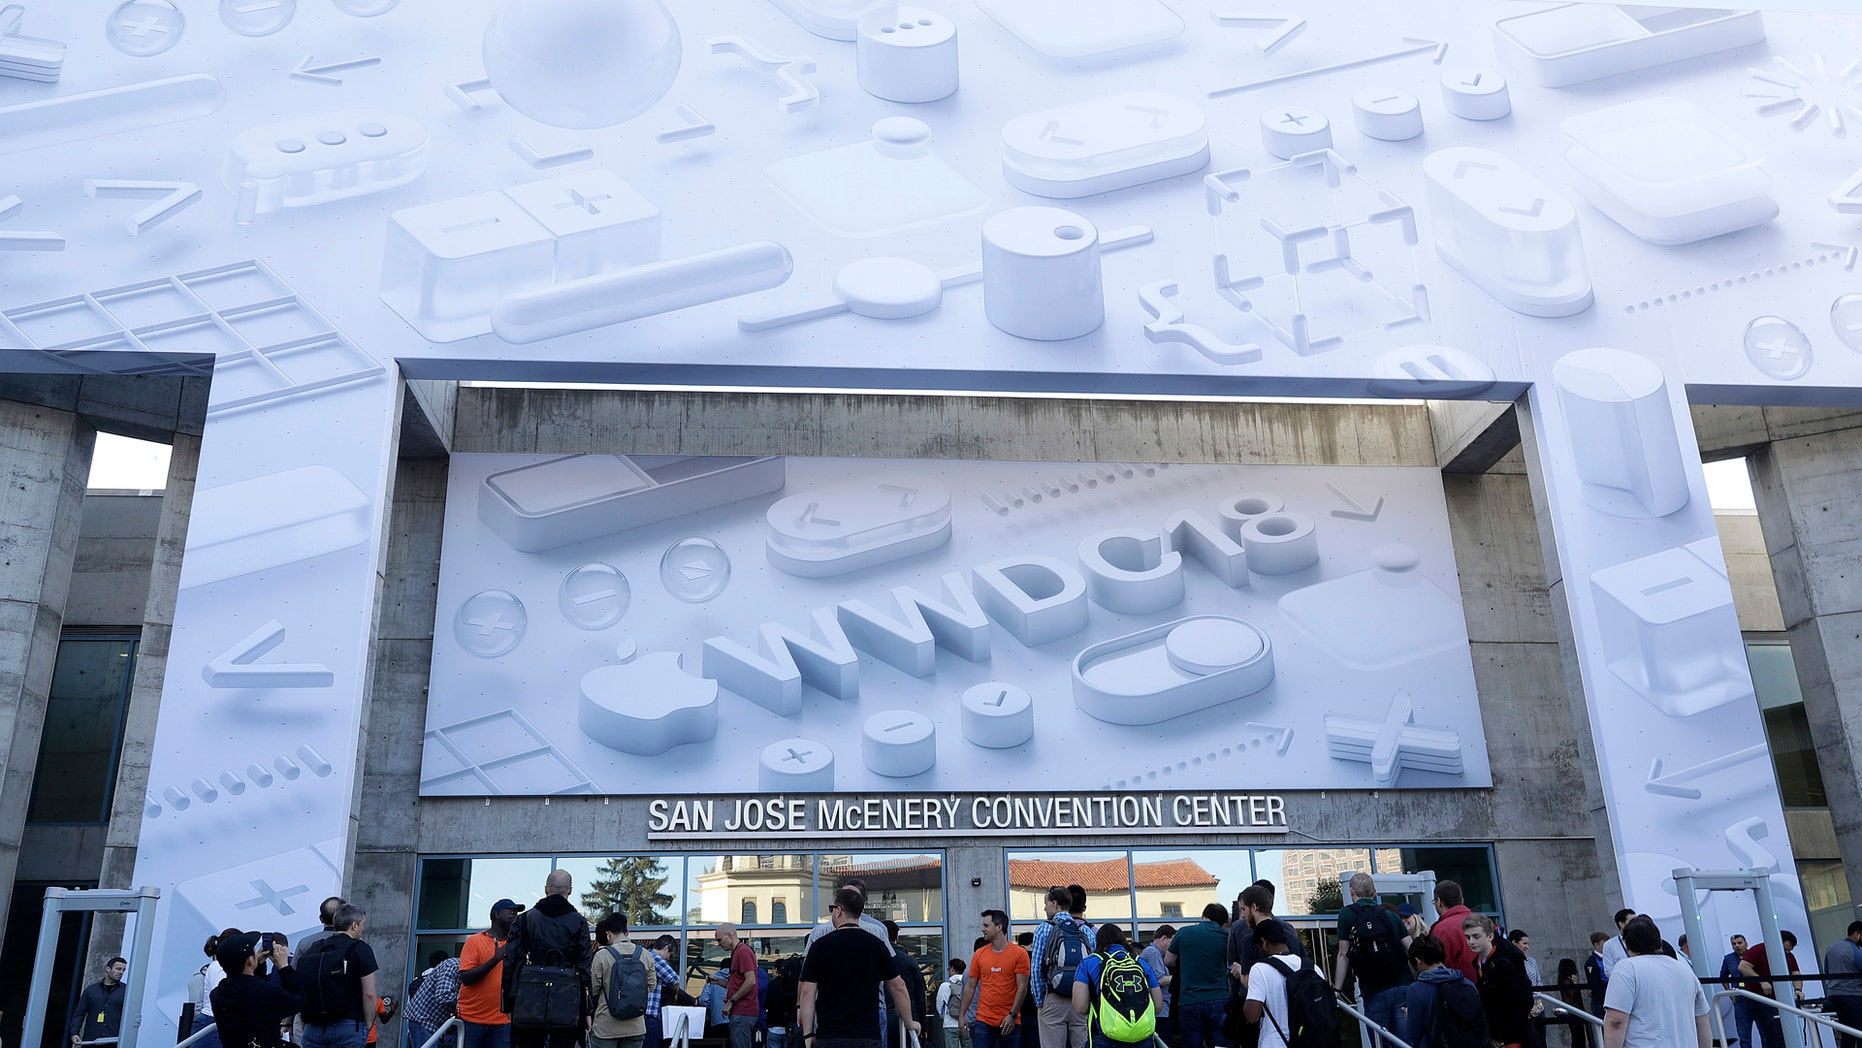 Attendees line up outside of the McEnery Convention Center for the Apple Worldwide Developers Conference in San Jose, Calif., Monday, June 4, 2018. (AP Photo/Marcio Jose Sanchez)